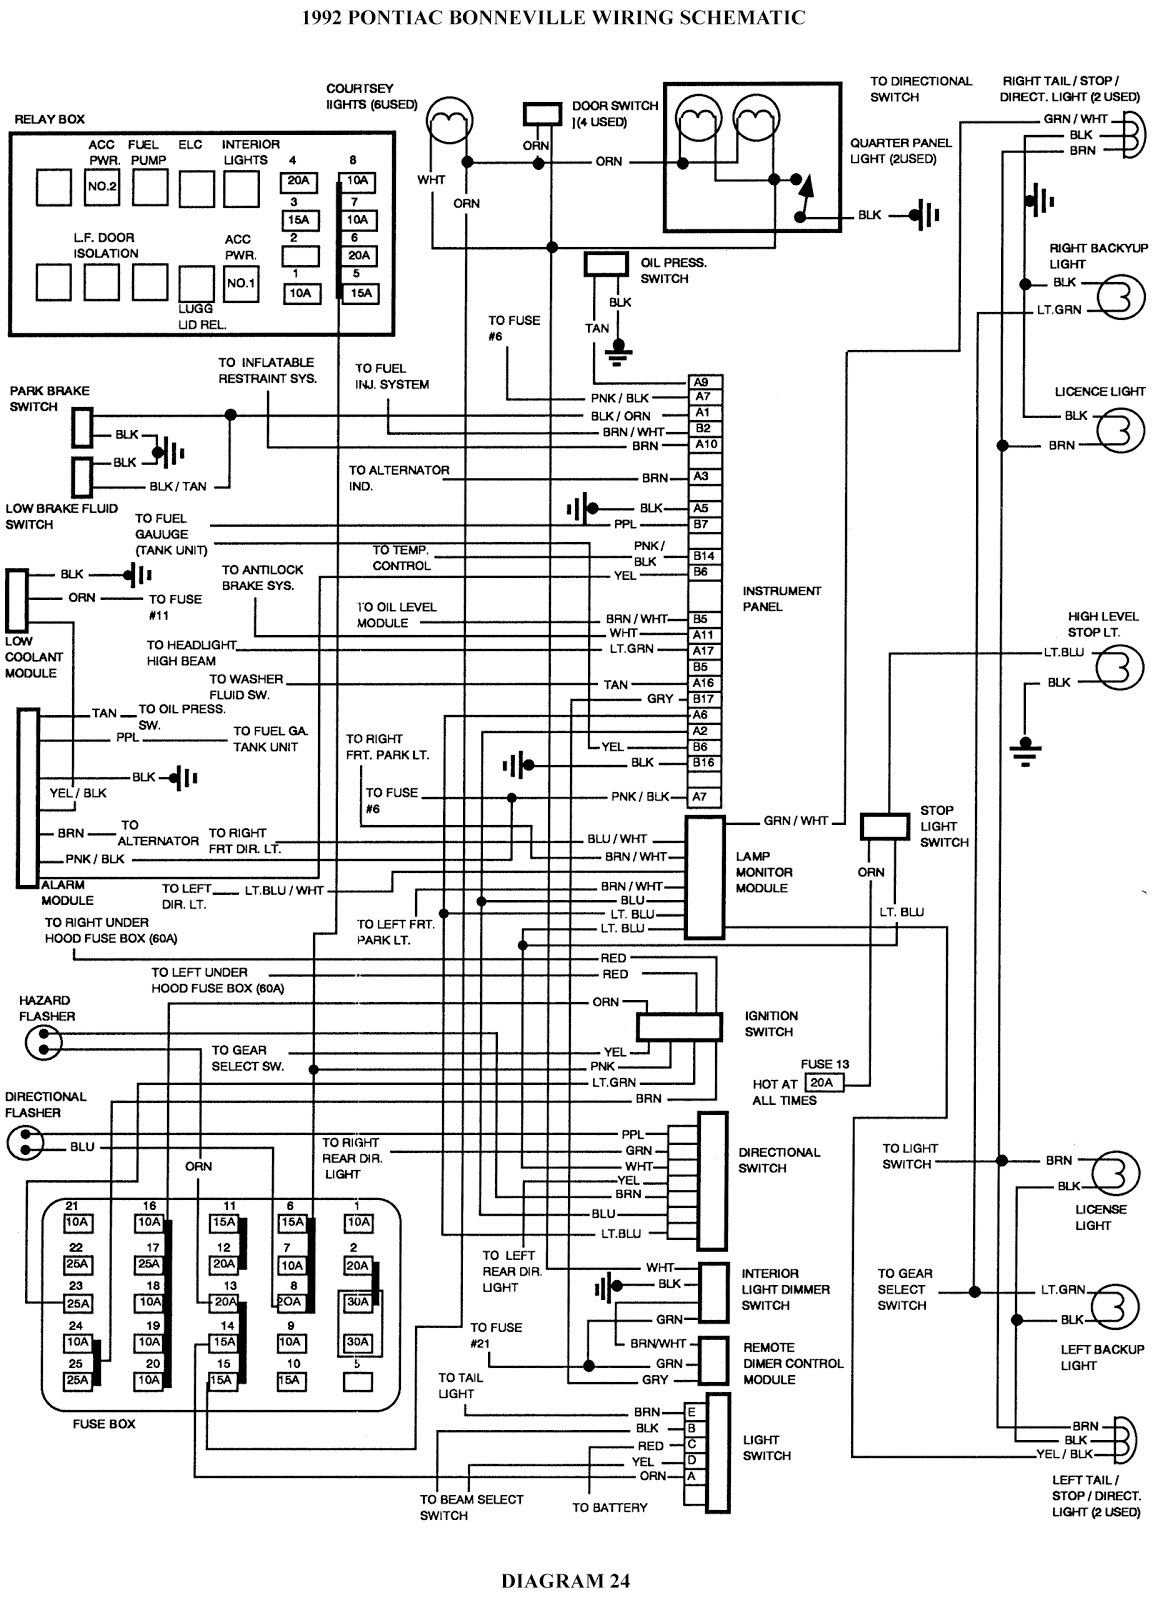 gm turn signal switch schematic